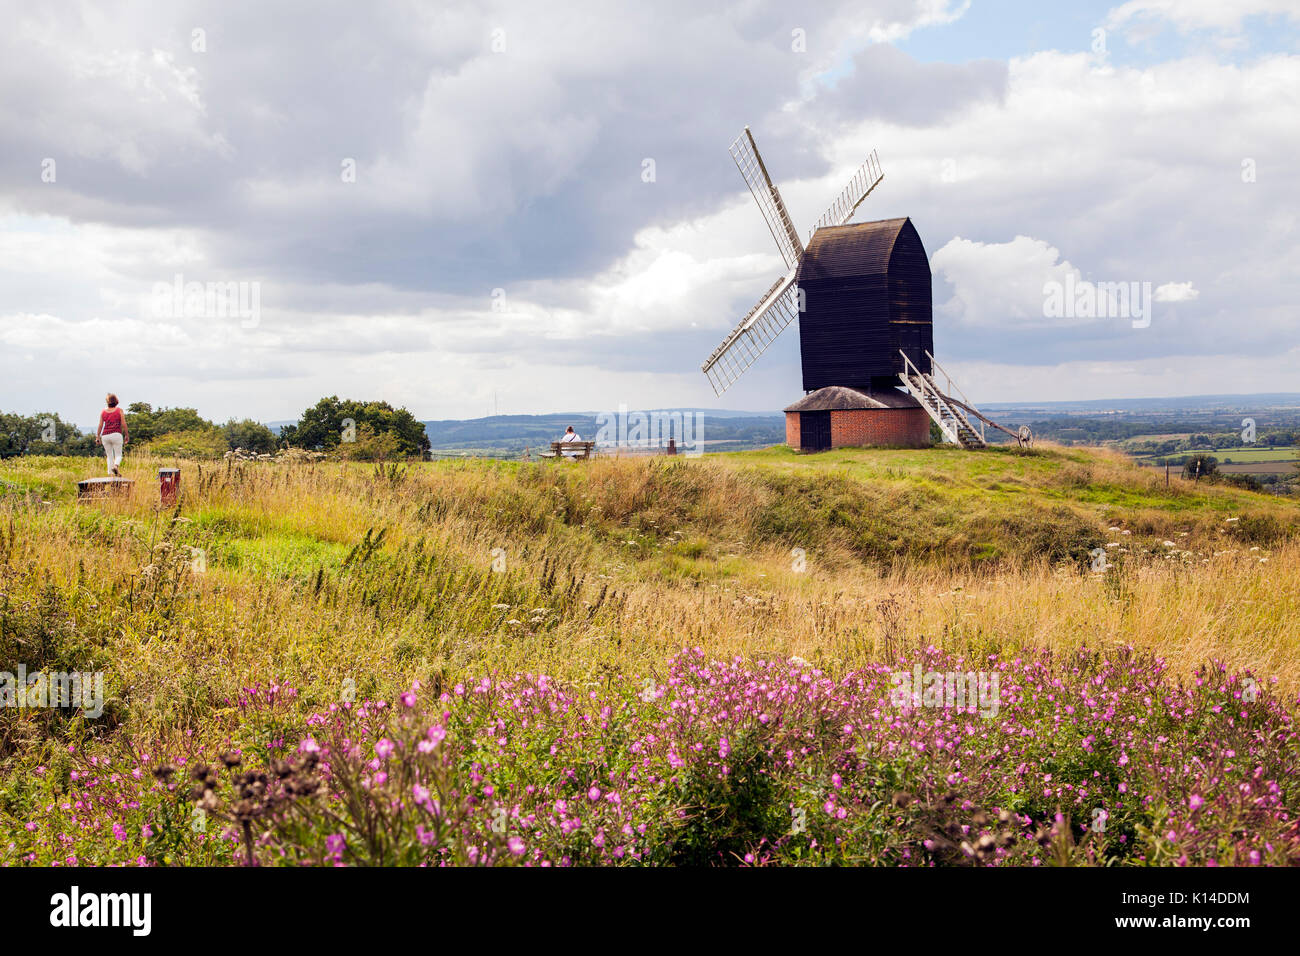 Windmill at Brill in Buckinghamshire  which is a post mill style of  windmill, the earliest  type of windmill in Europe,  a grade II listed building - Stock Image